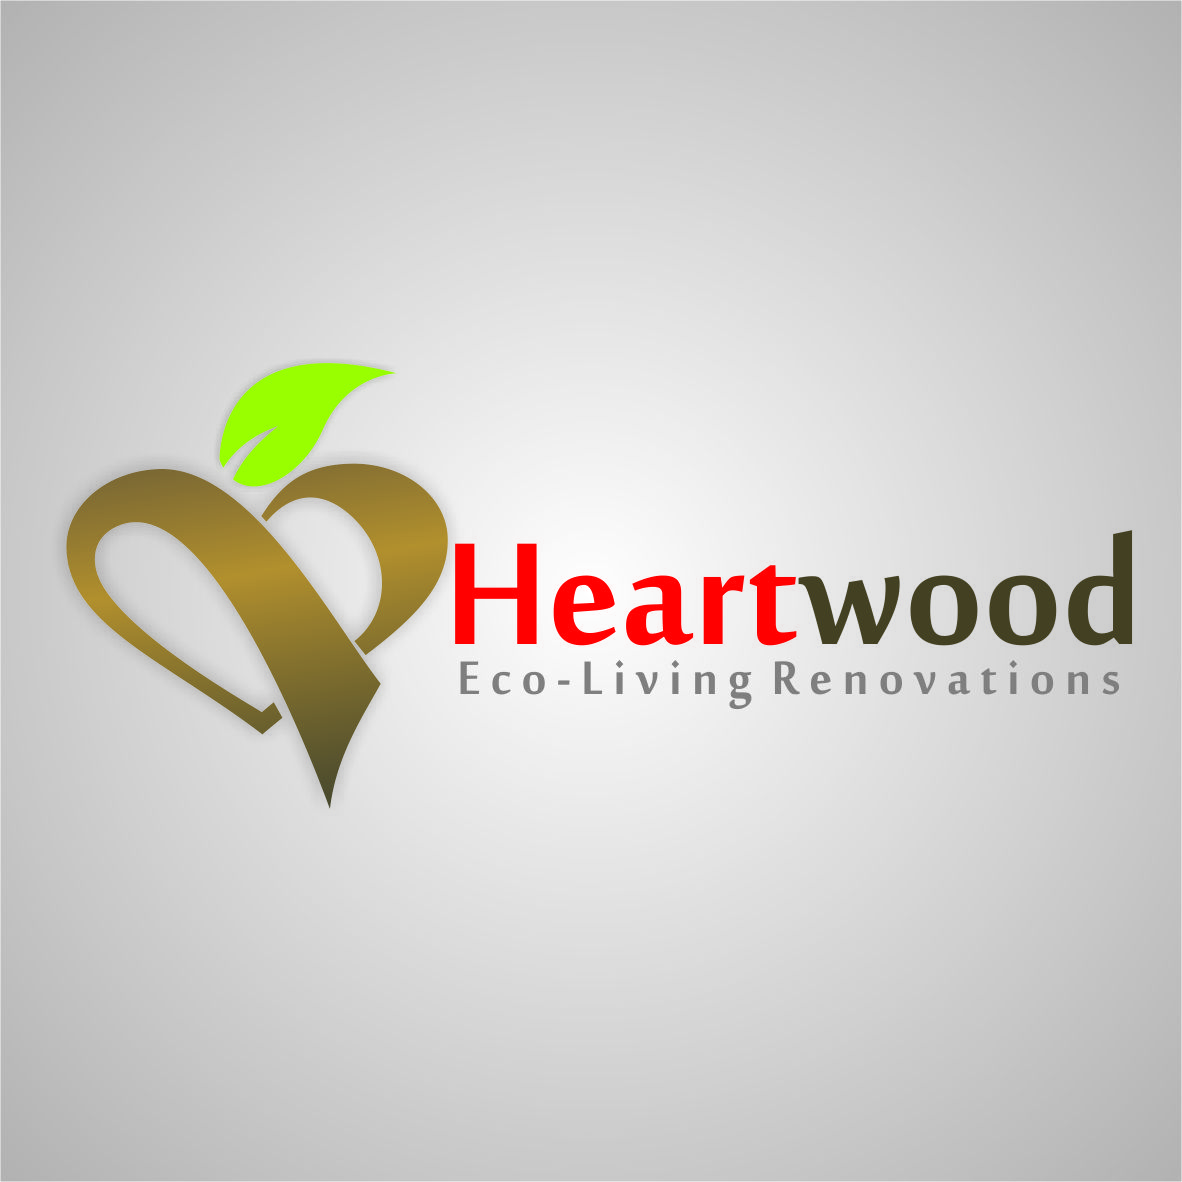 Logo Design by arteo_design - Entry No. 59 in the Logo Design Contest New Logo Design for Heartwood Eco-Living Renovations.